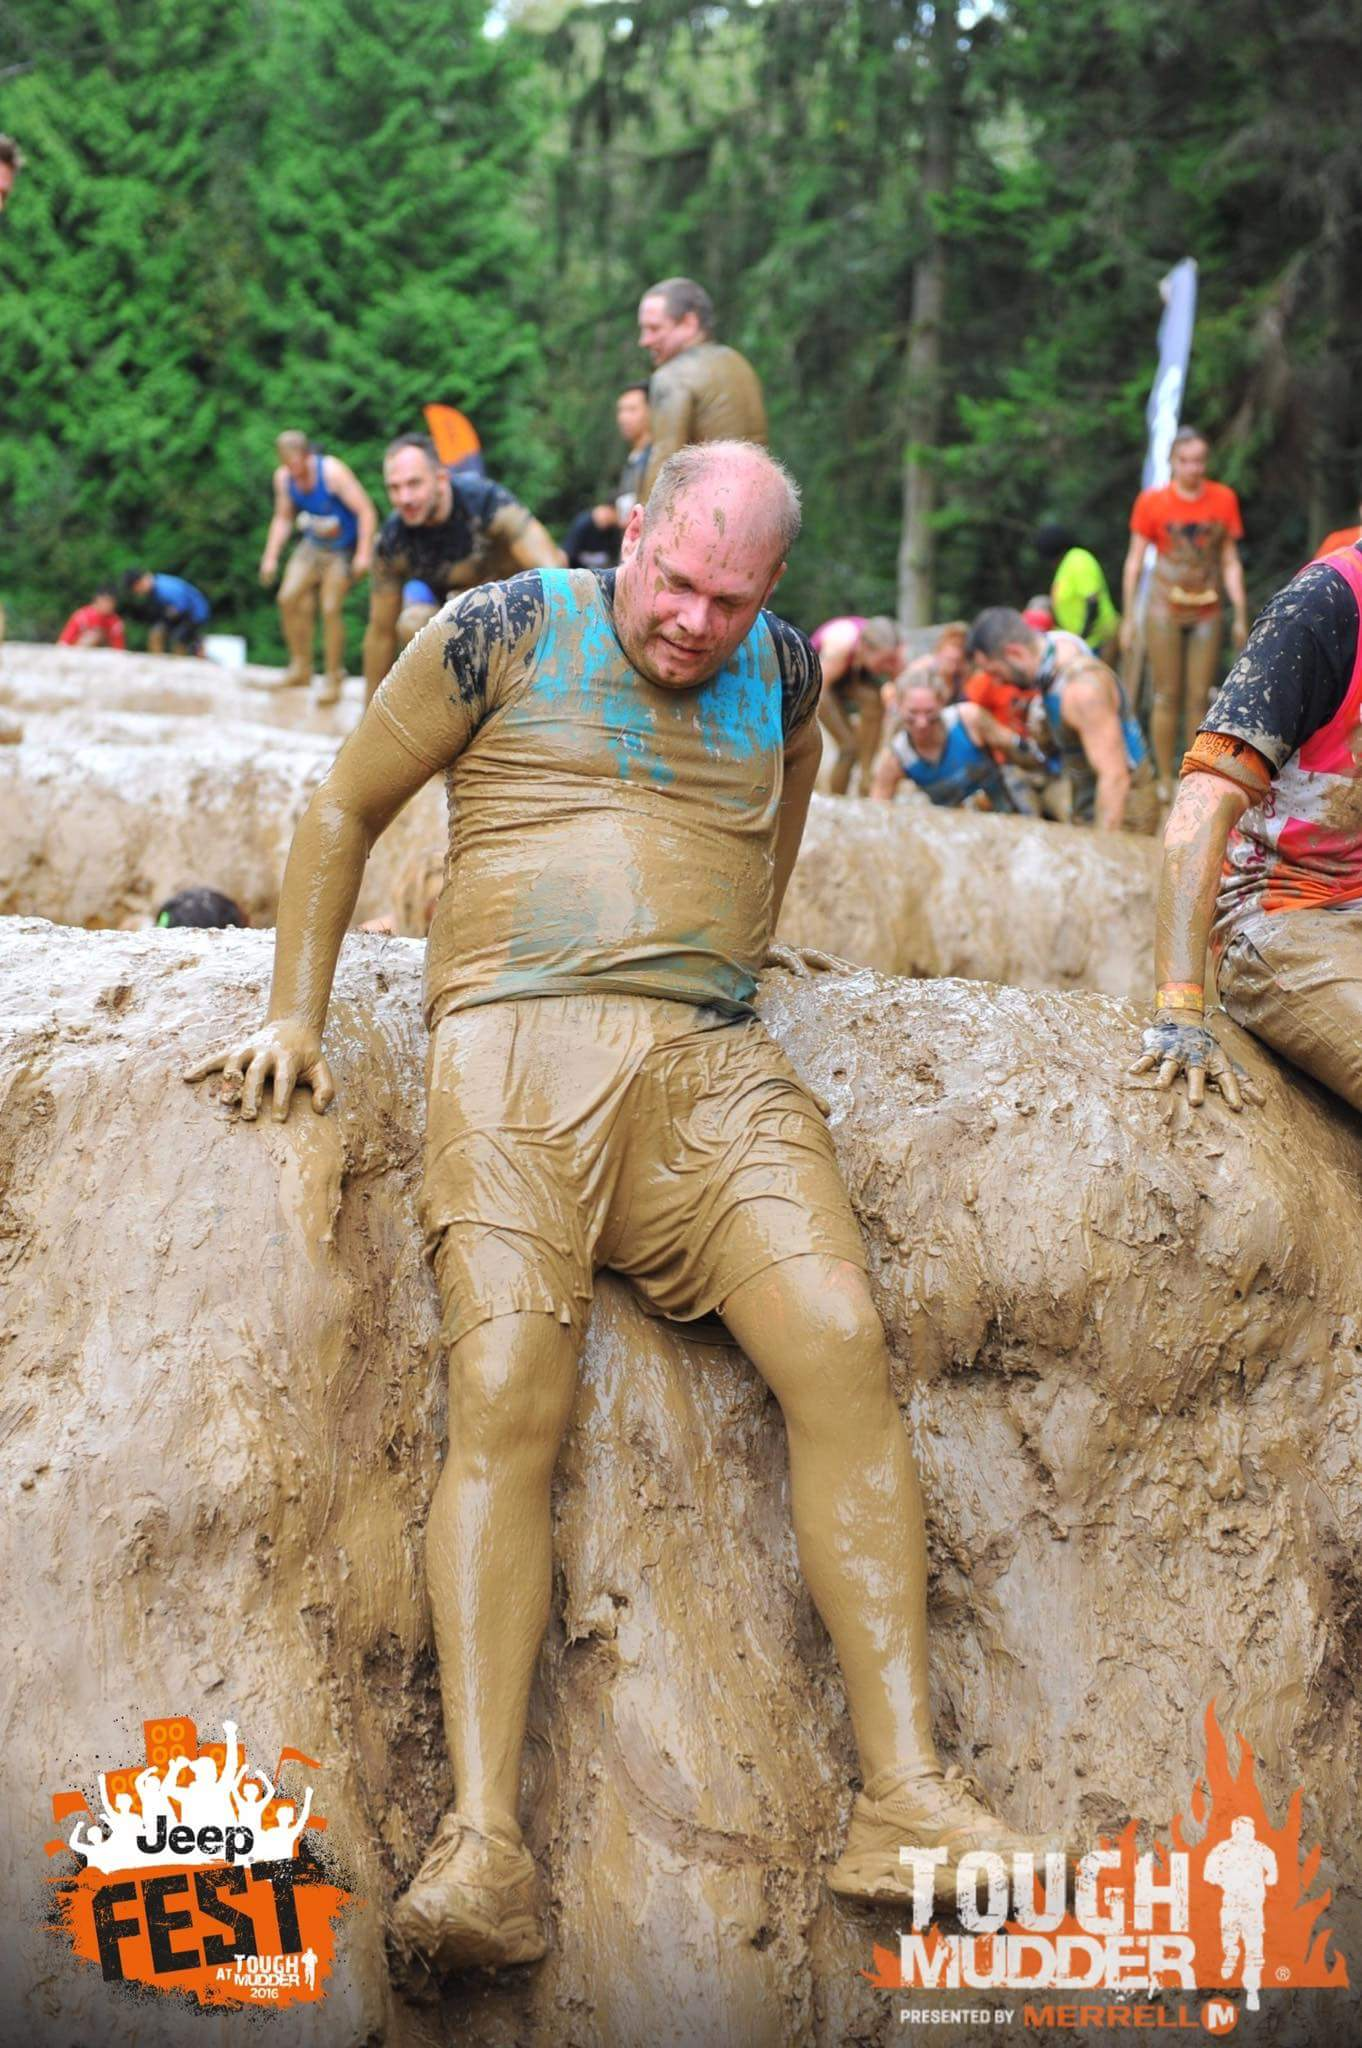 Origen - Tough Mudder challenge raising awareness of Childlife - image by Gameface Media